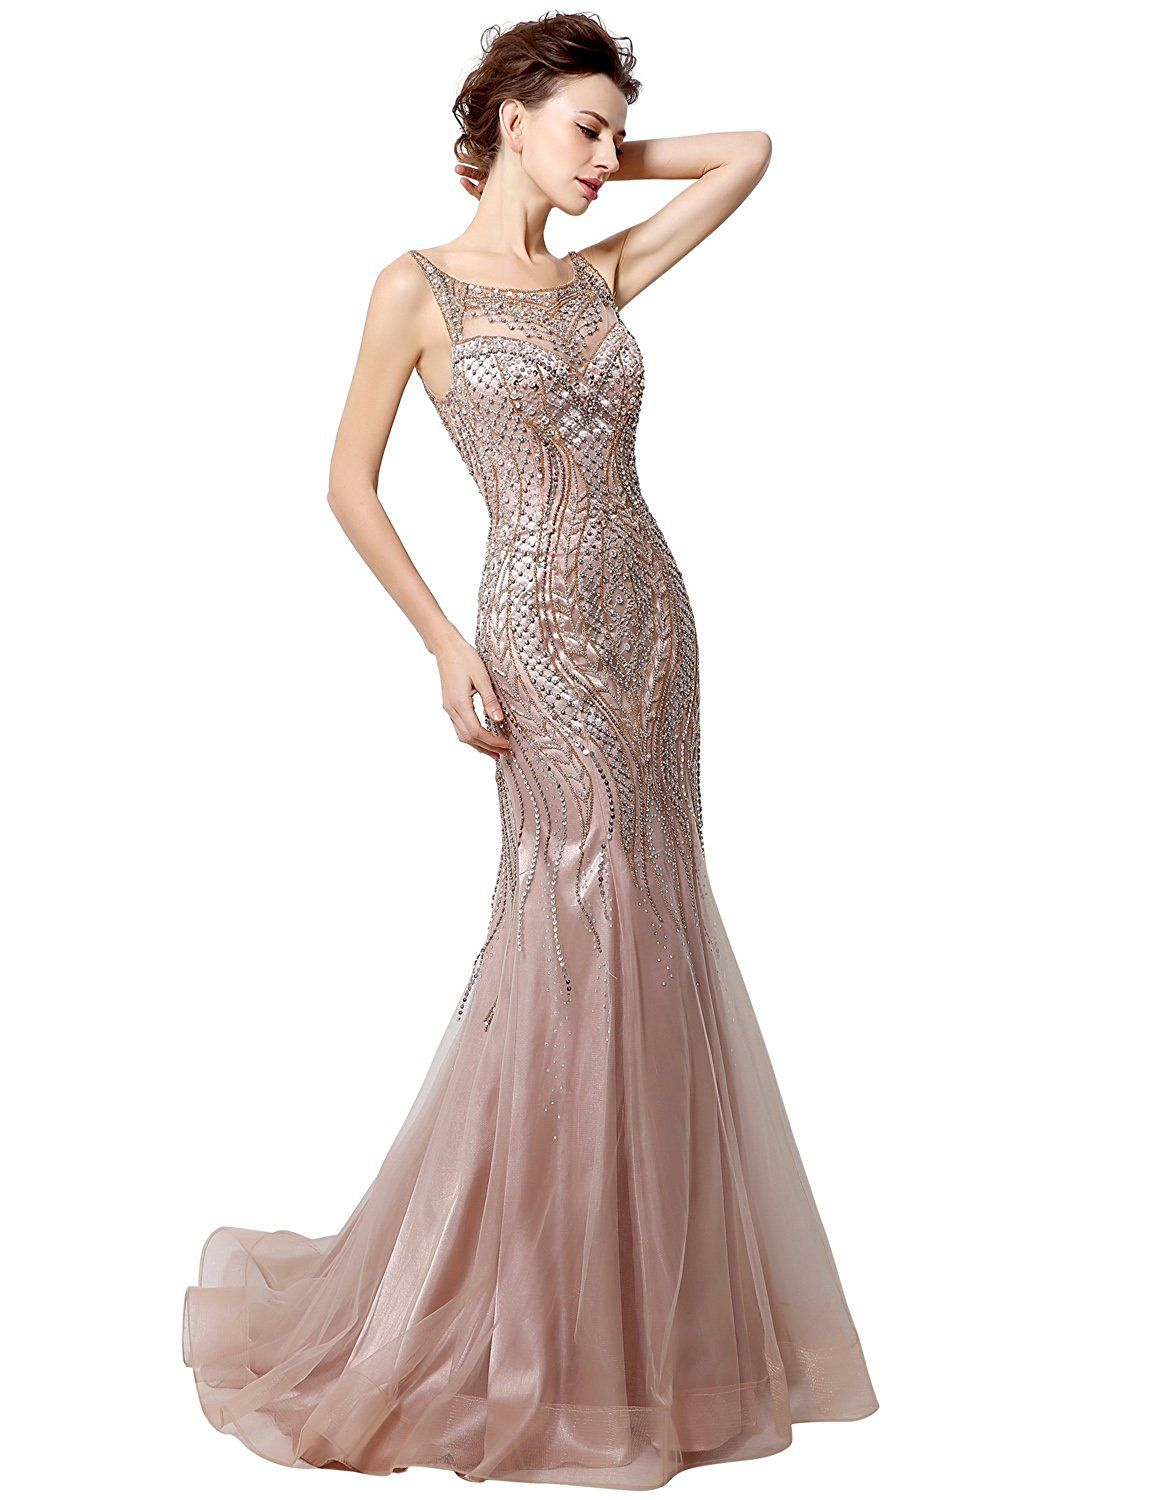 Belle house womenus long formal dresses with beads luxury prom ball